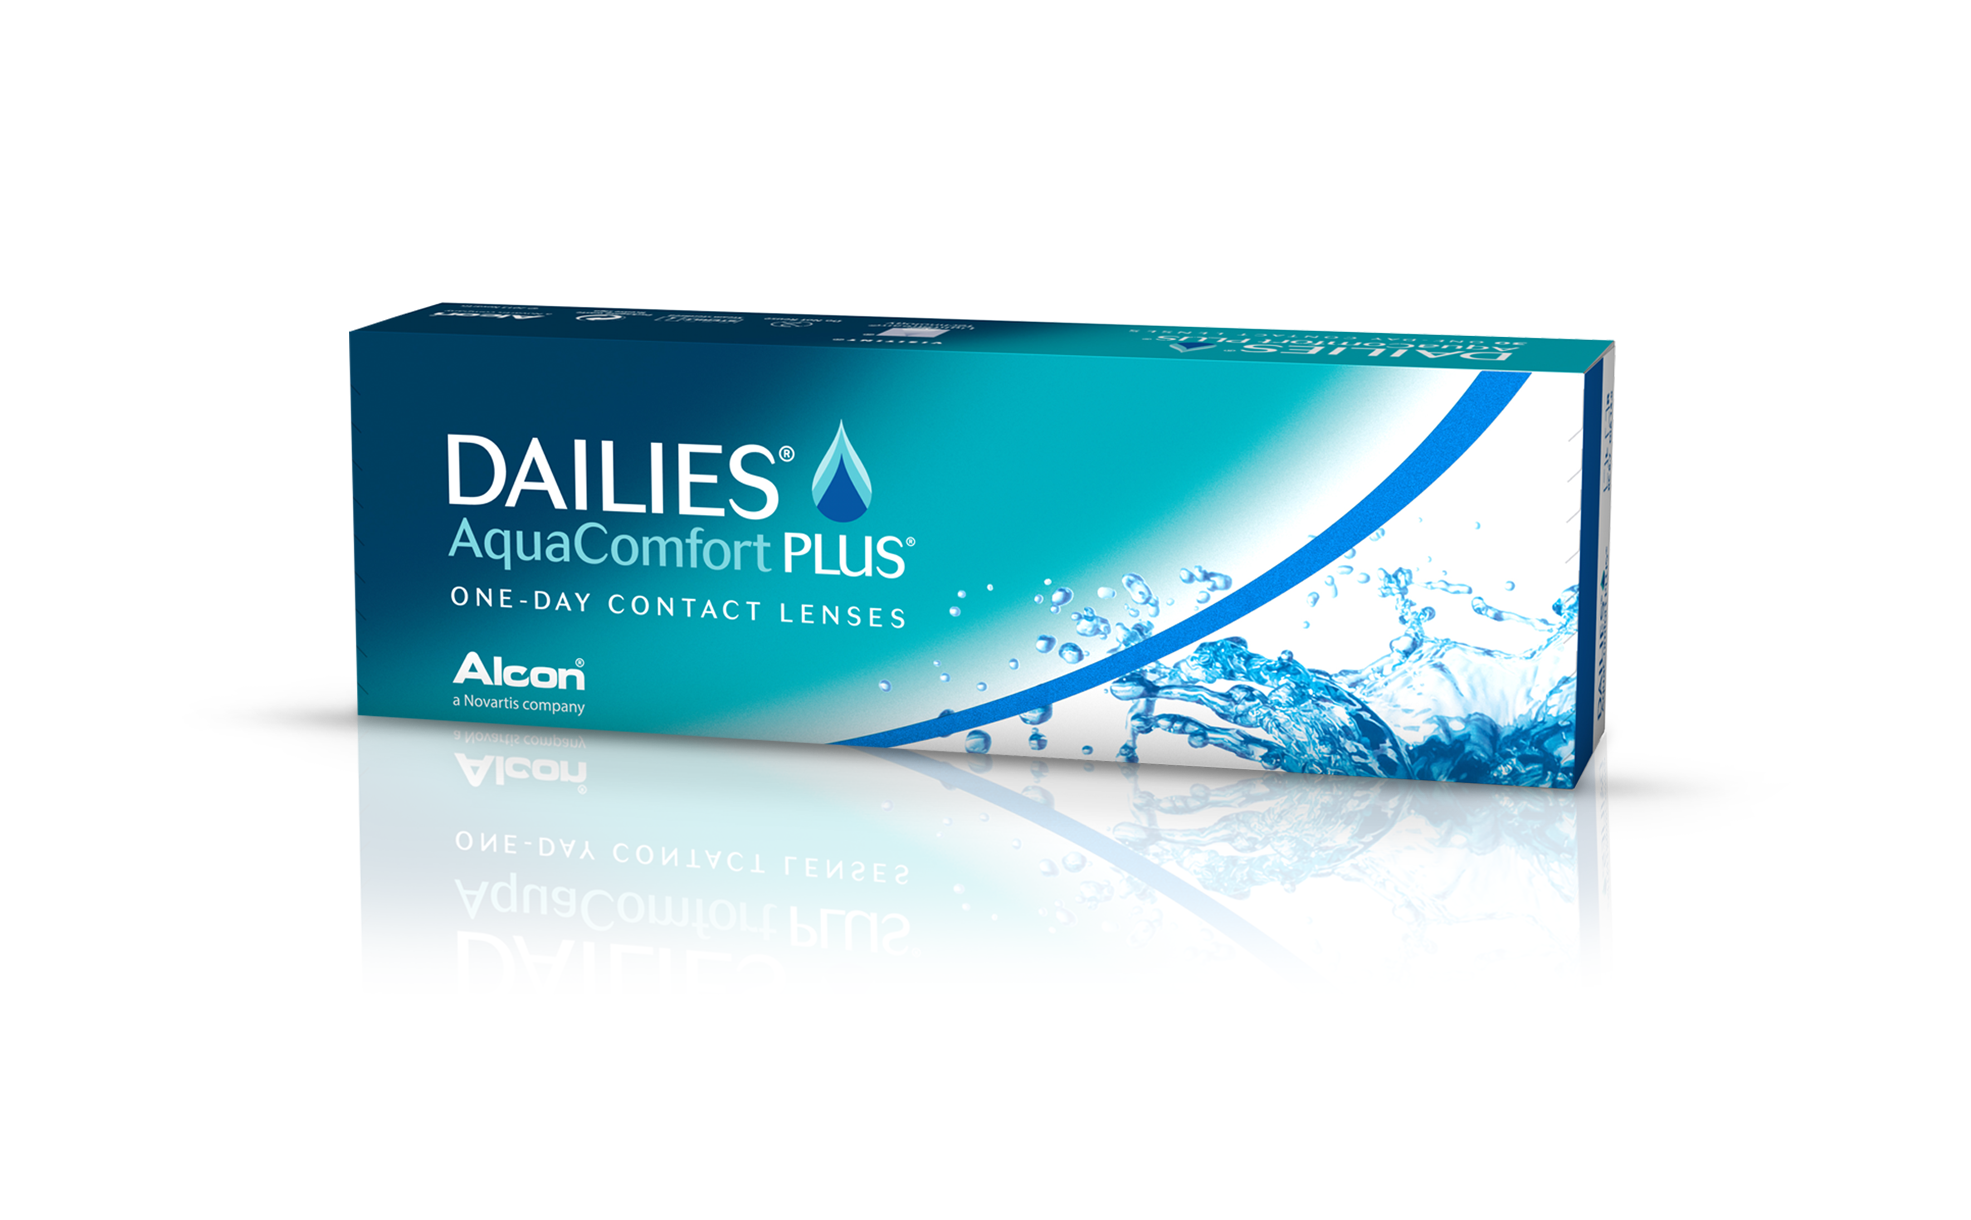 with and us to alcon of articles aquacomfor patients dacp plus contact spherical aquacomfort packaging lenses patient for aqua announces specific in friendly assist comfort new comforter launch launched packs proper dailies